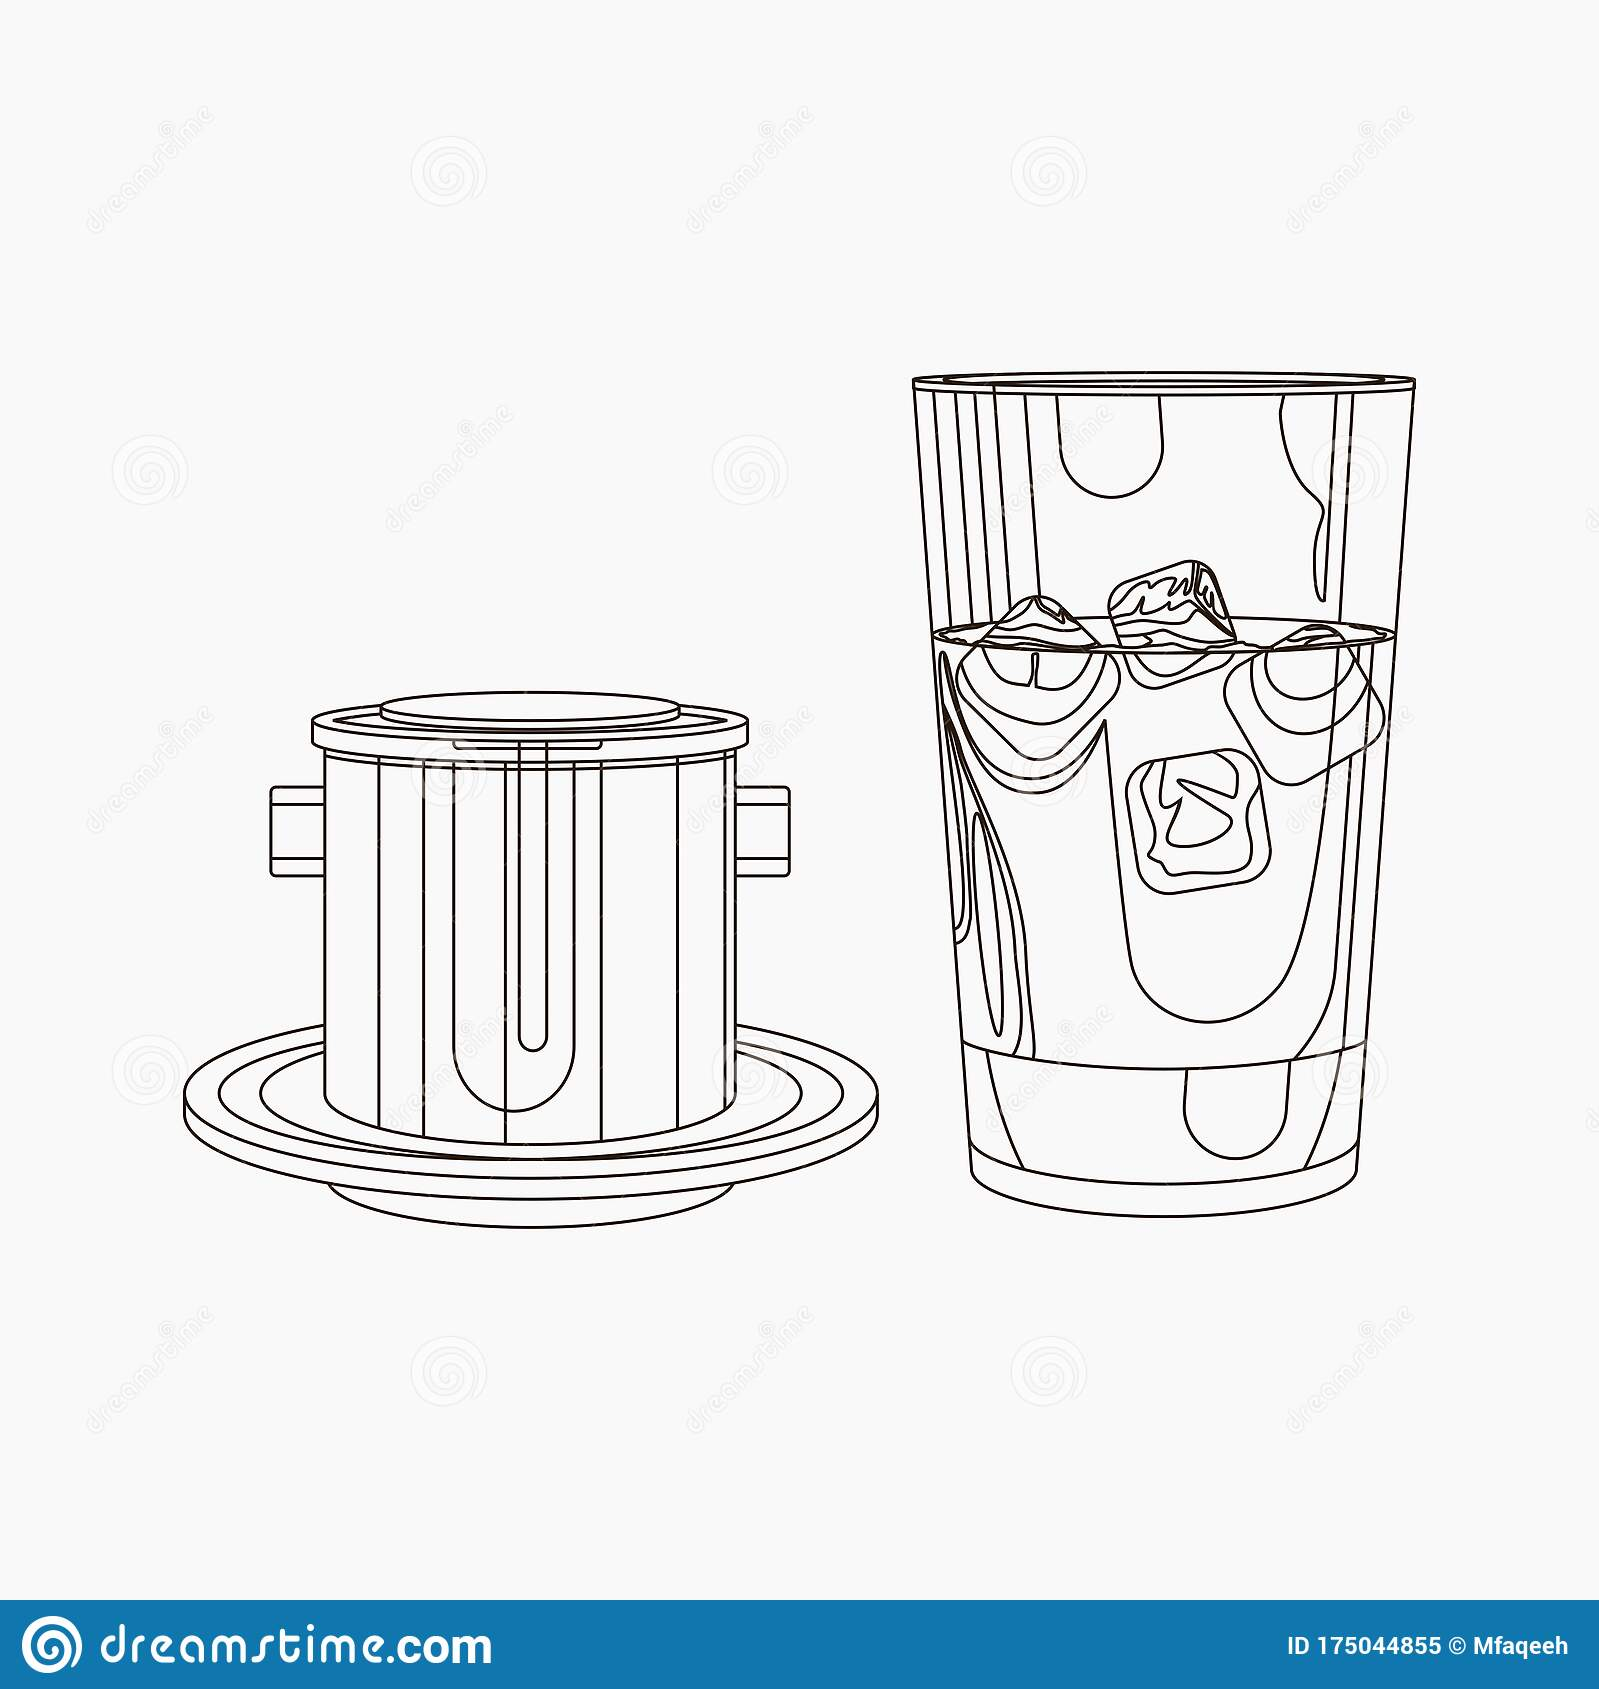 Vietnamese Drip Coffee Stock Illustrations 45 Vietnamese Drip Coffee Stock Illustrations Vectors Clipart Dreamstime